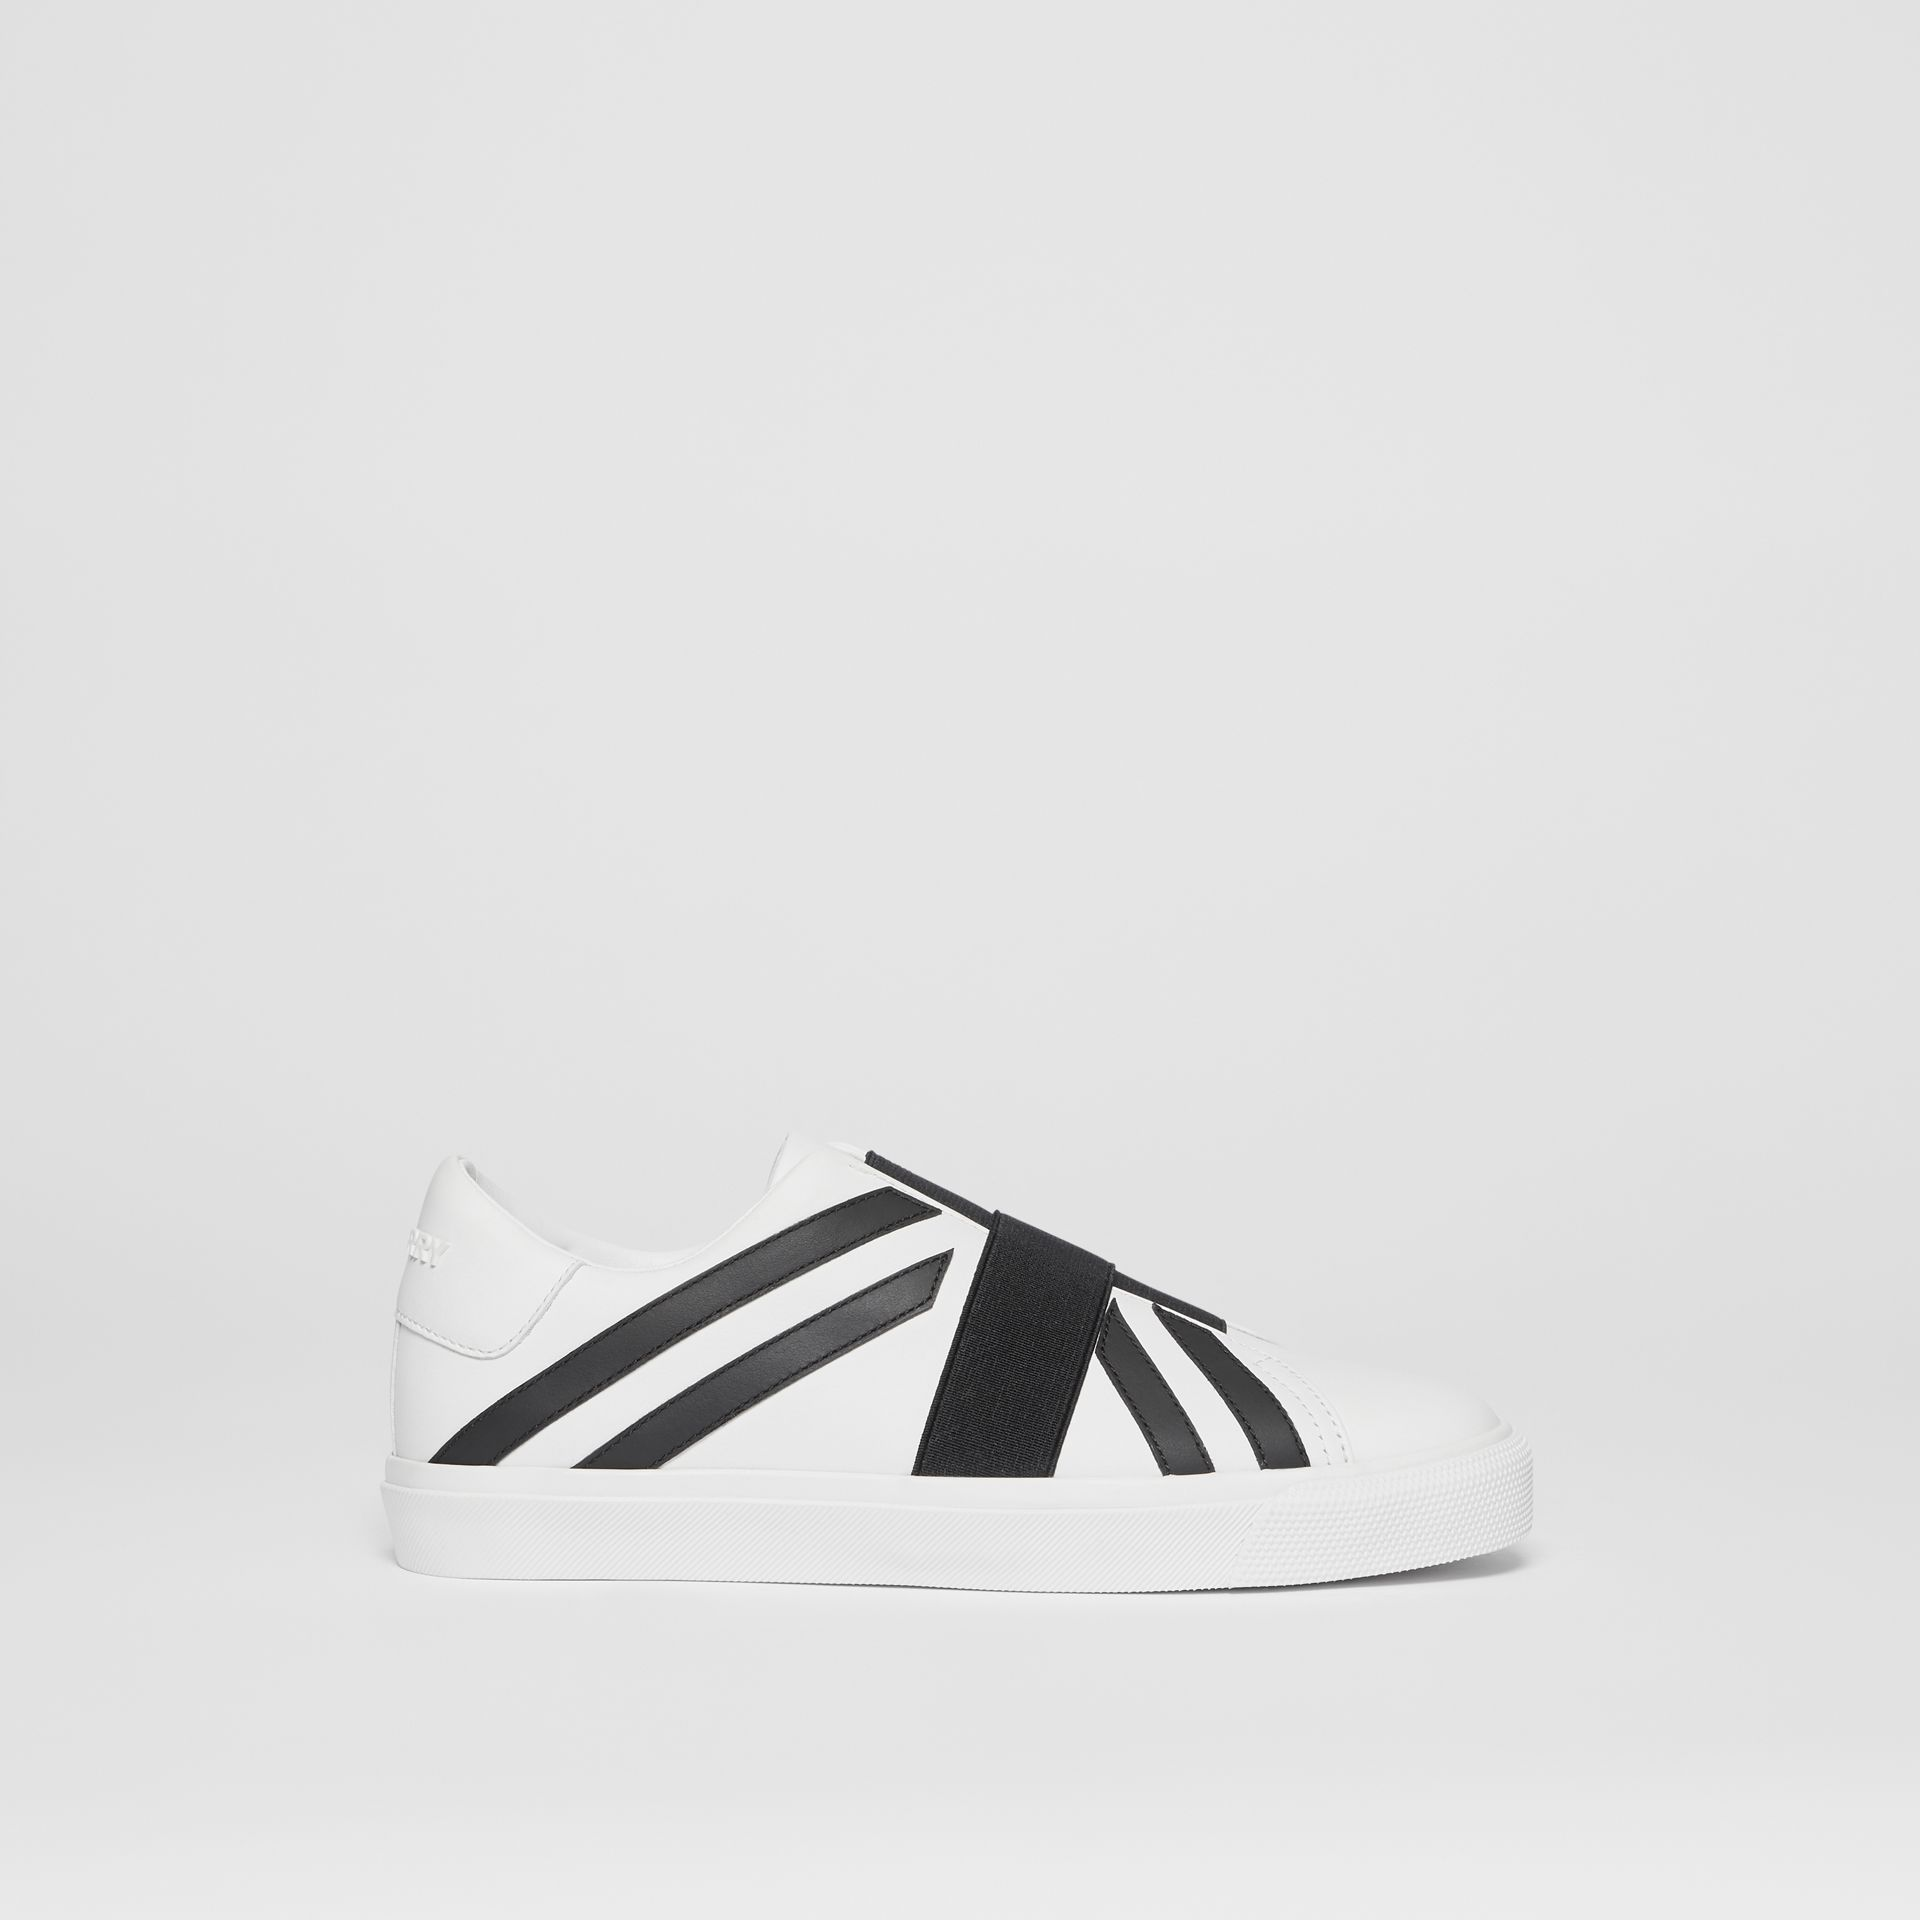 Union Jack Motif Slip-on Sneakers in Optic White/black - Women | Burberry Singapore - gallery image 5